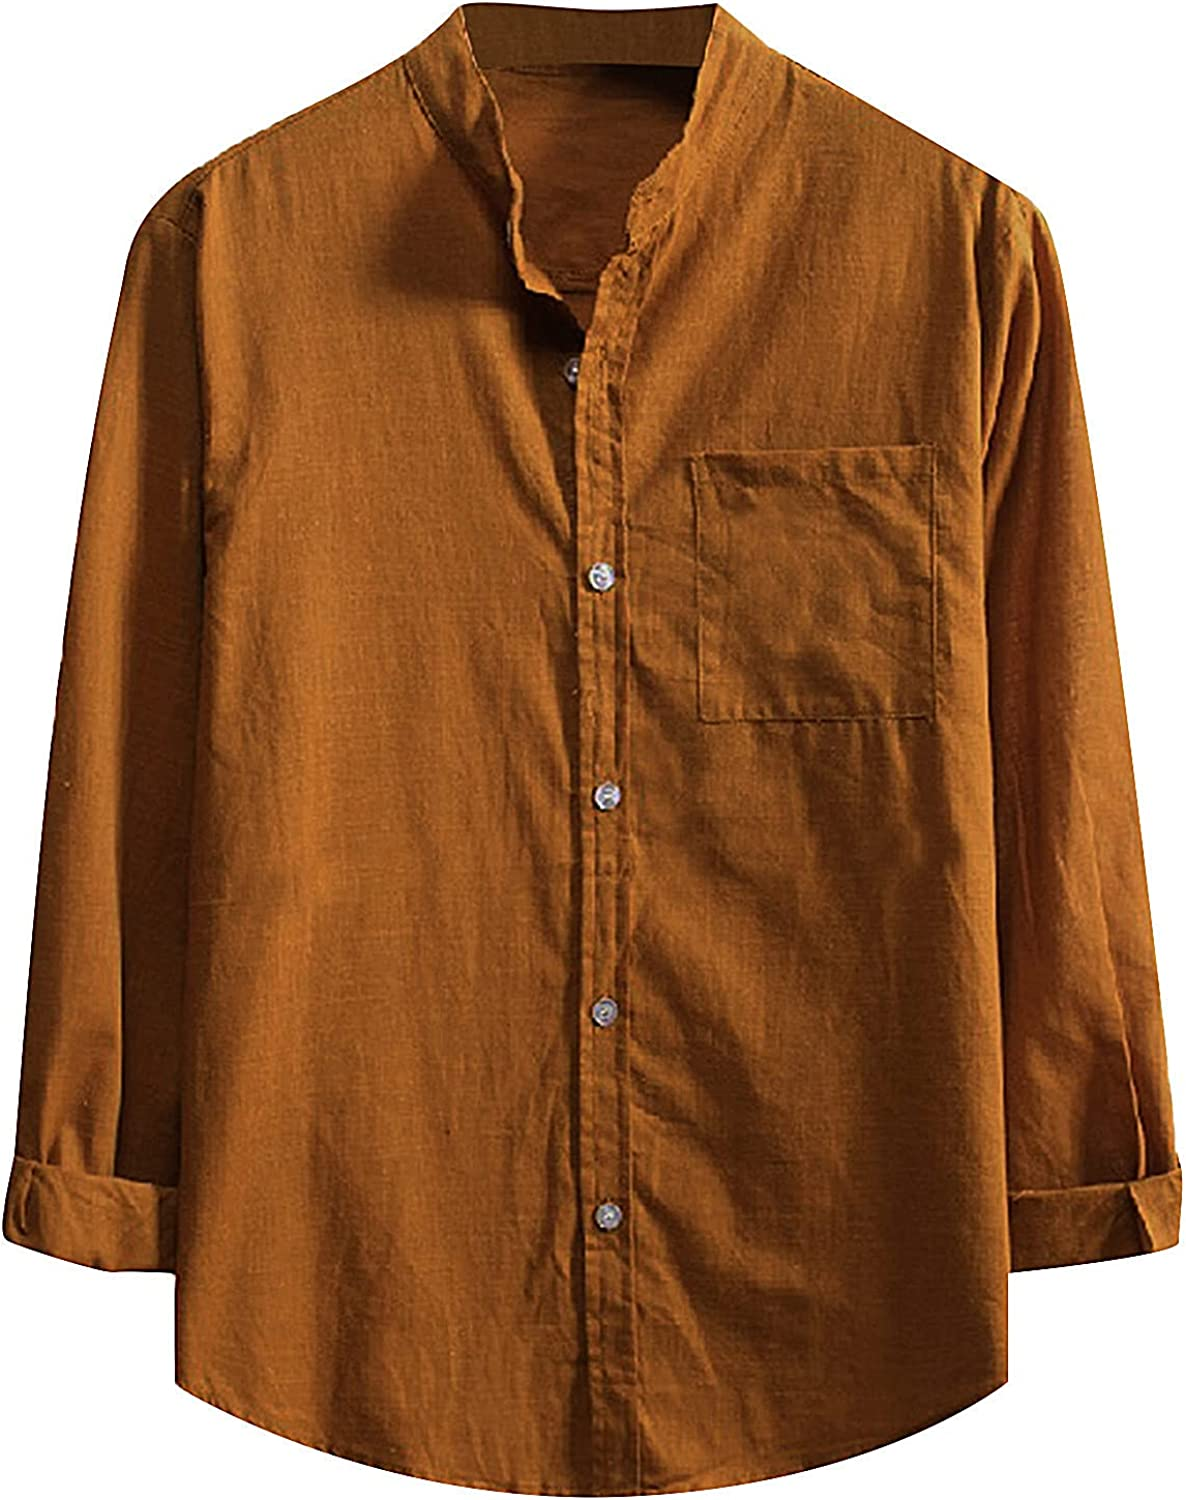 Mens Vintage Flannel Button Down Shirts Classic Color Block Long Sleeve Lightweight Sweatshirts Flannel Jackets